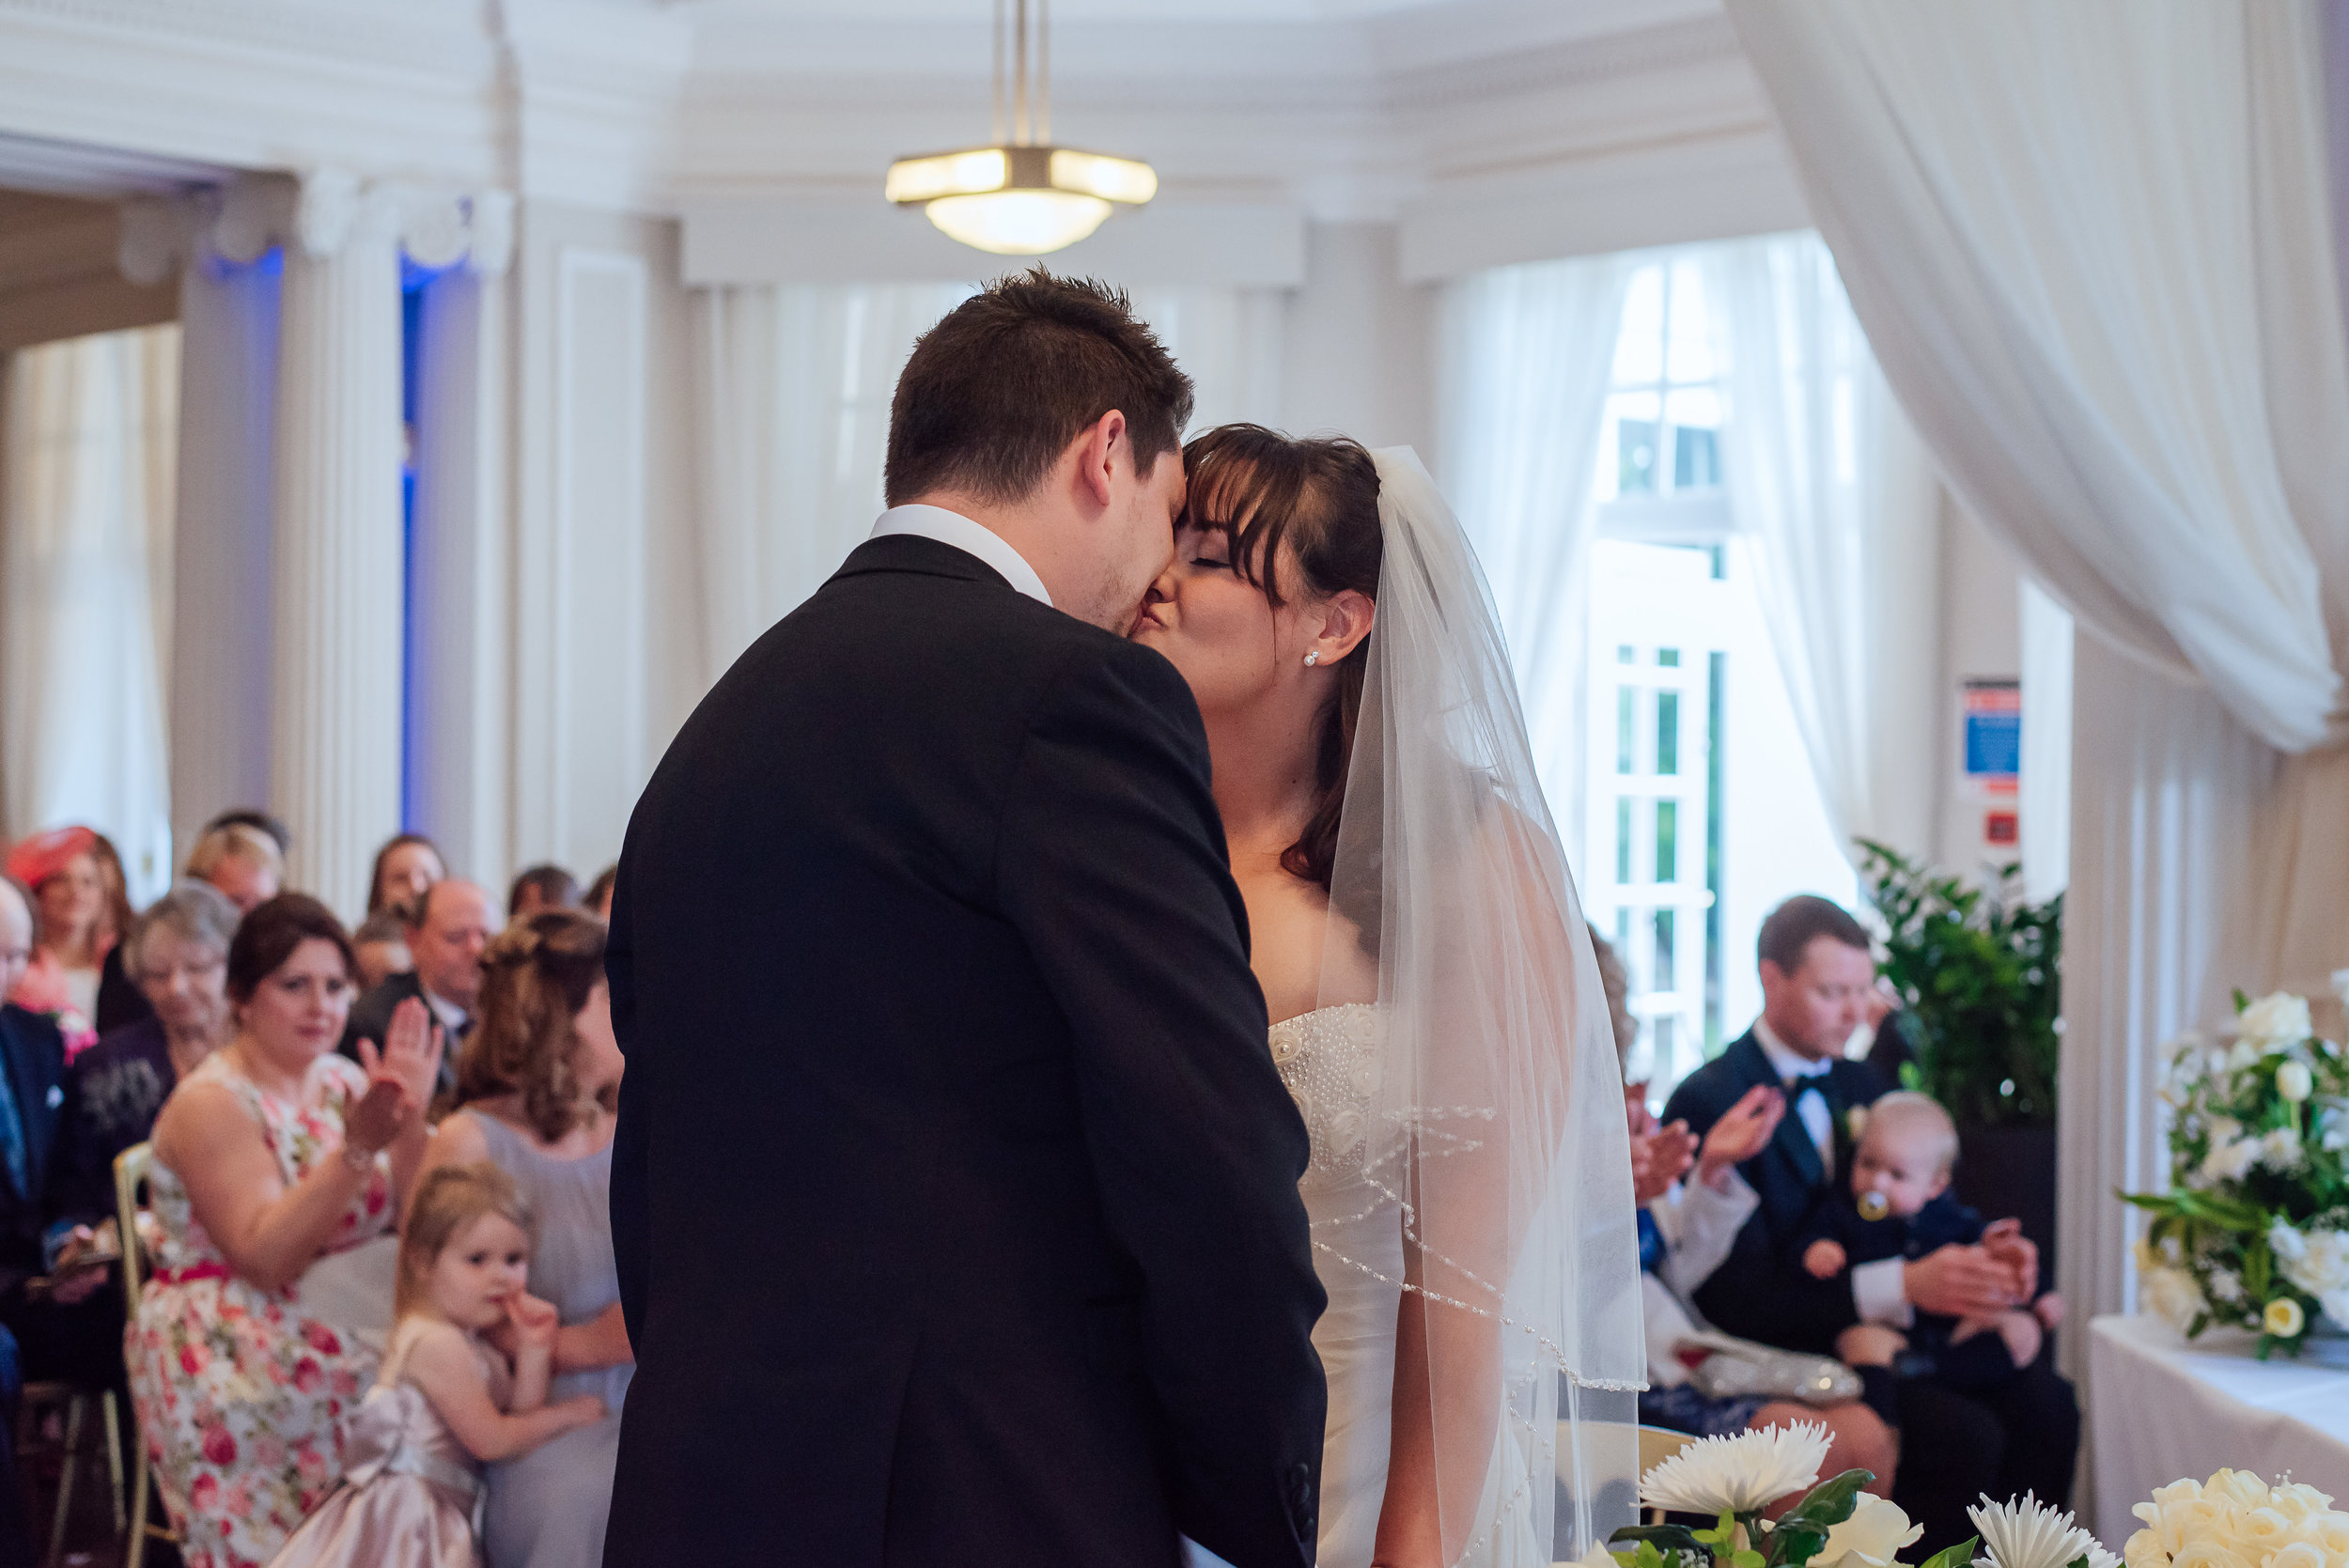 Wedding ceremony at Heatherden Hall Pinewood Park - Amy James Photography - Wedding photographer Hampshire Surrey and Berkshire